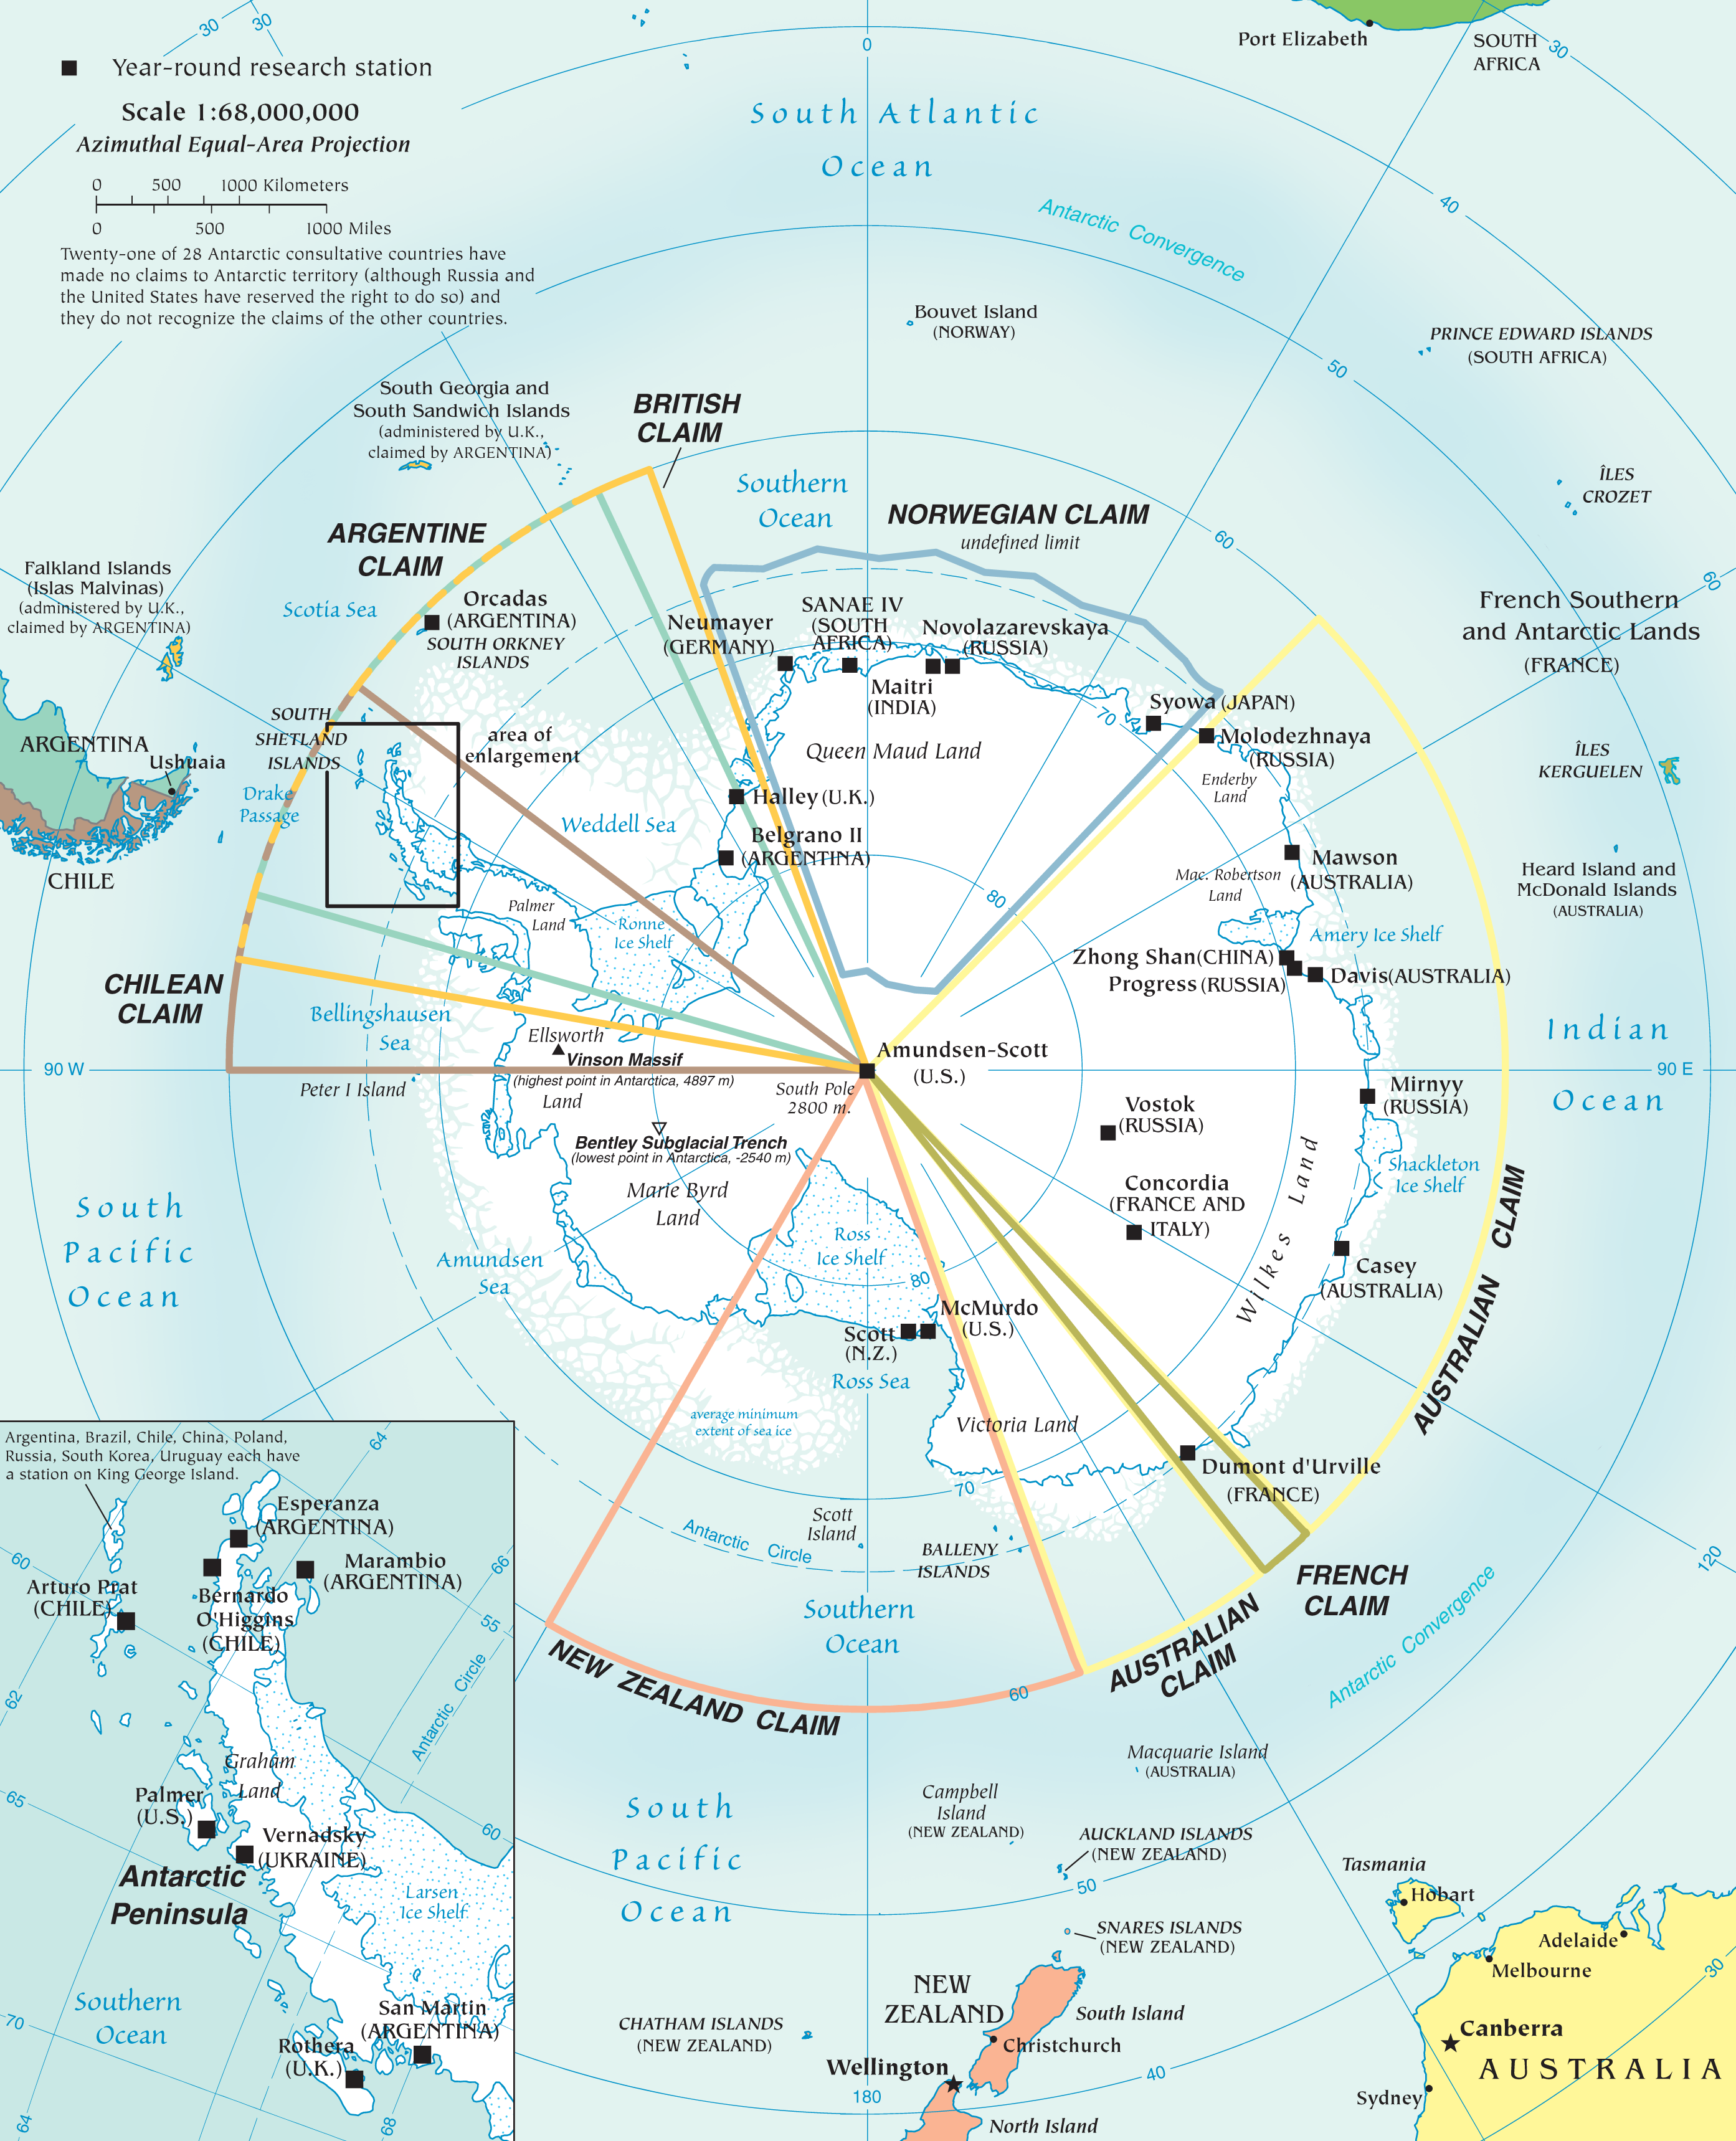 Antarctic region